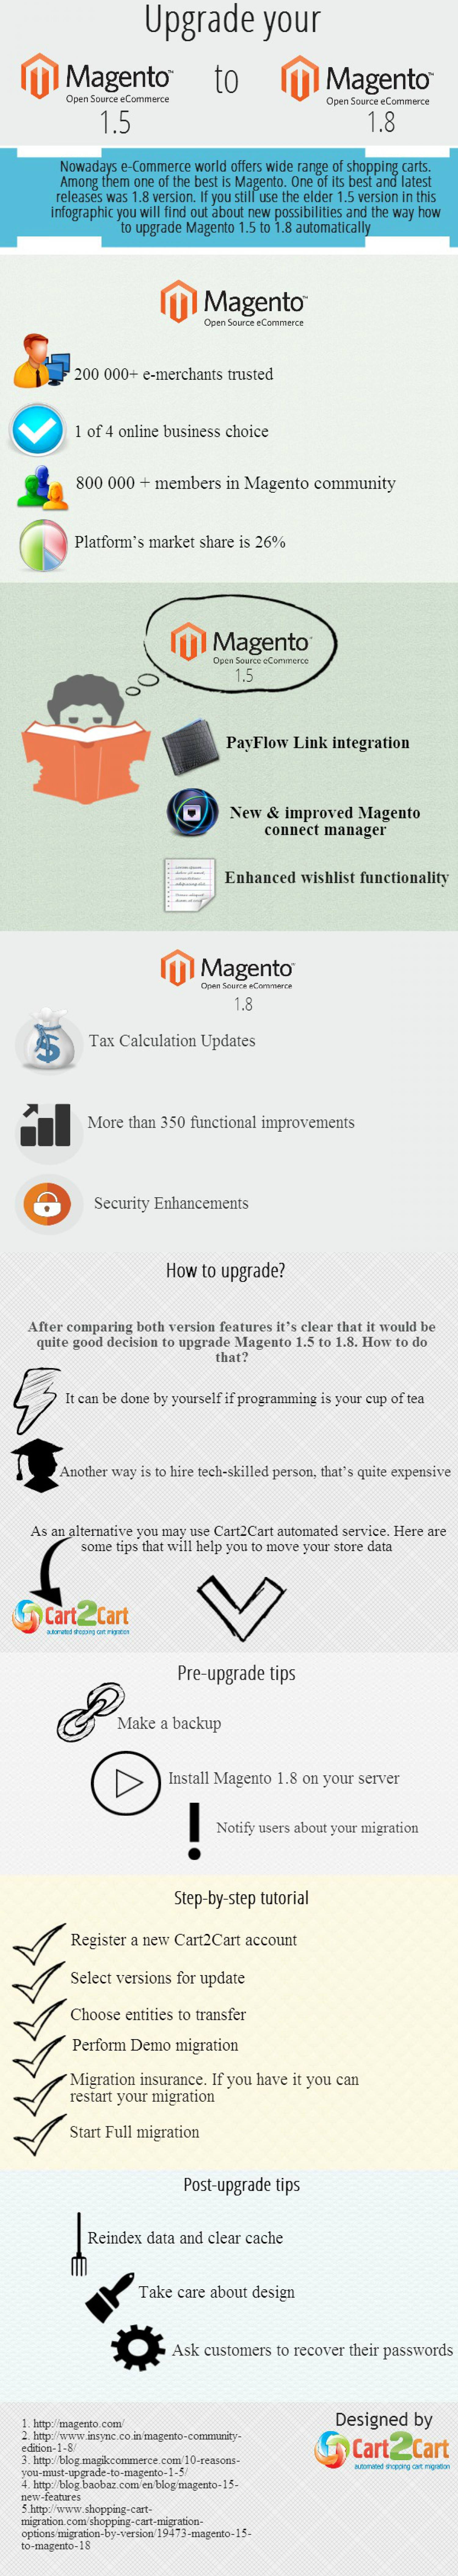 How to Upgrade Magento 1.5 to 1.8 Infographic